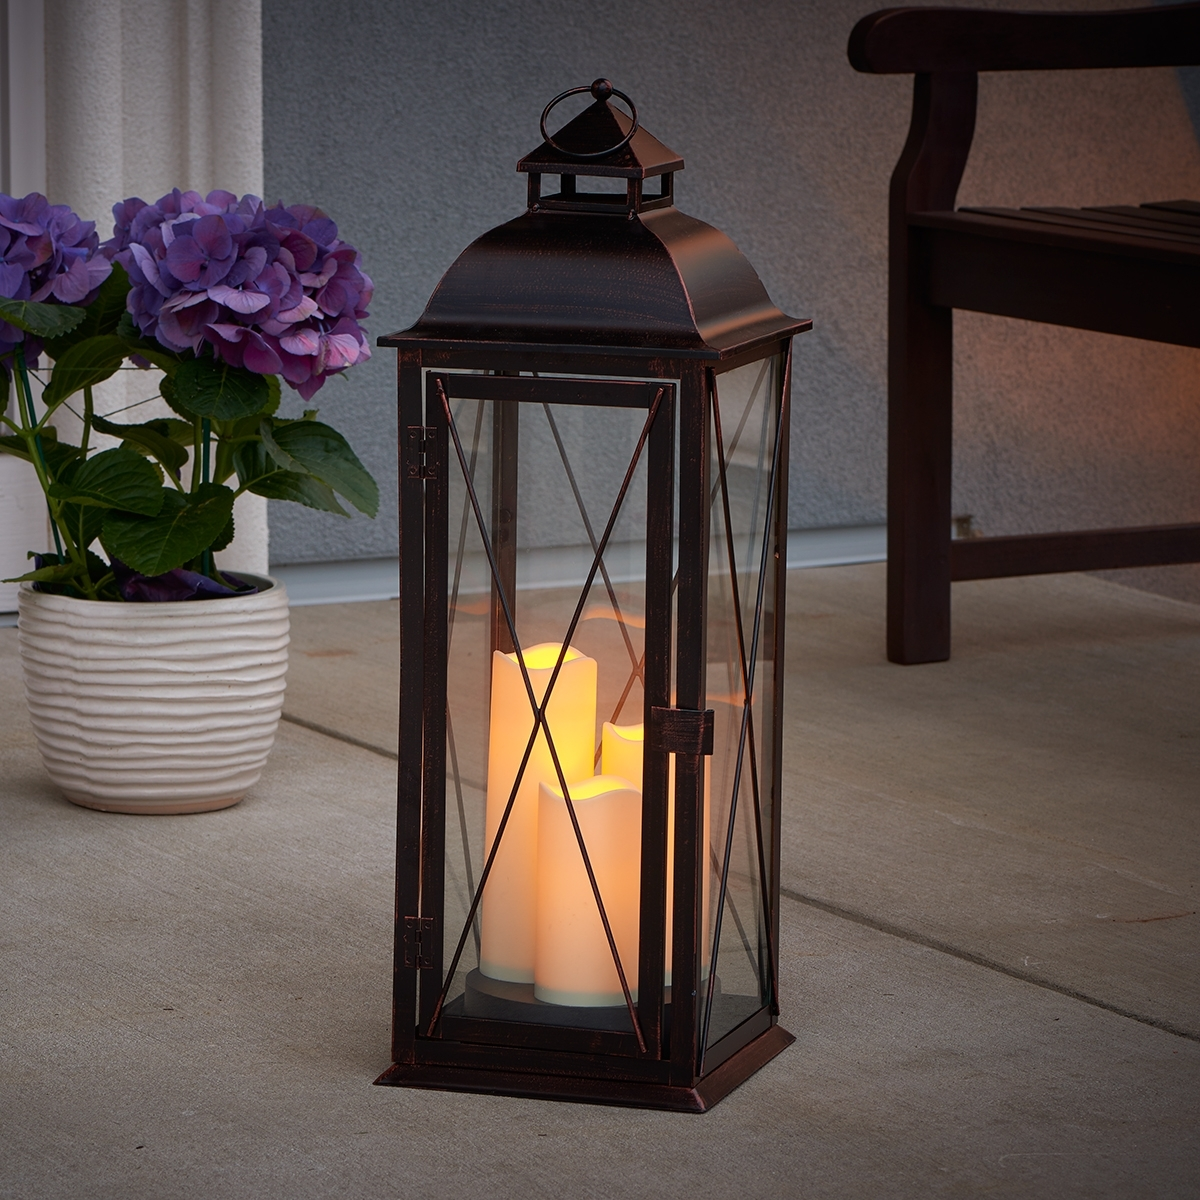 Salerno Triple Led Candle Lantern | Antique Brown | Smart Living With Regard To Outdoor Timer Lanterns (View 4 of 20)